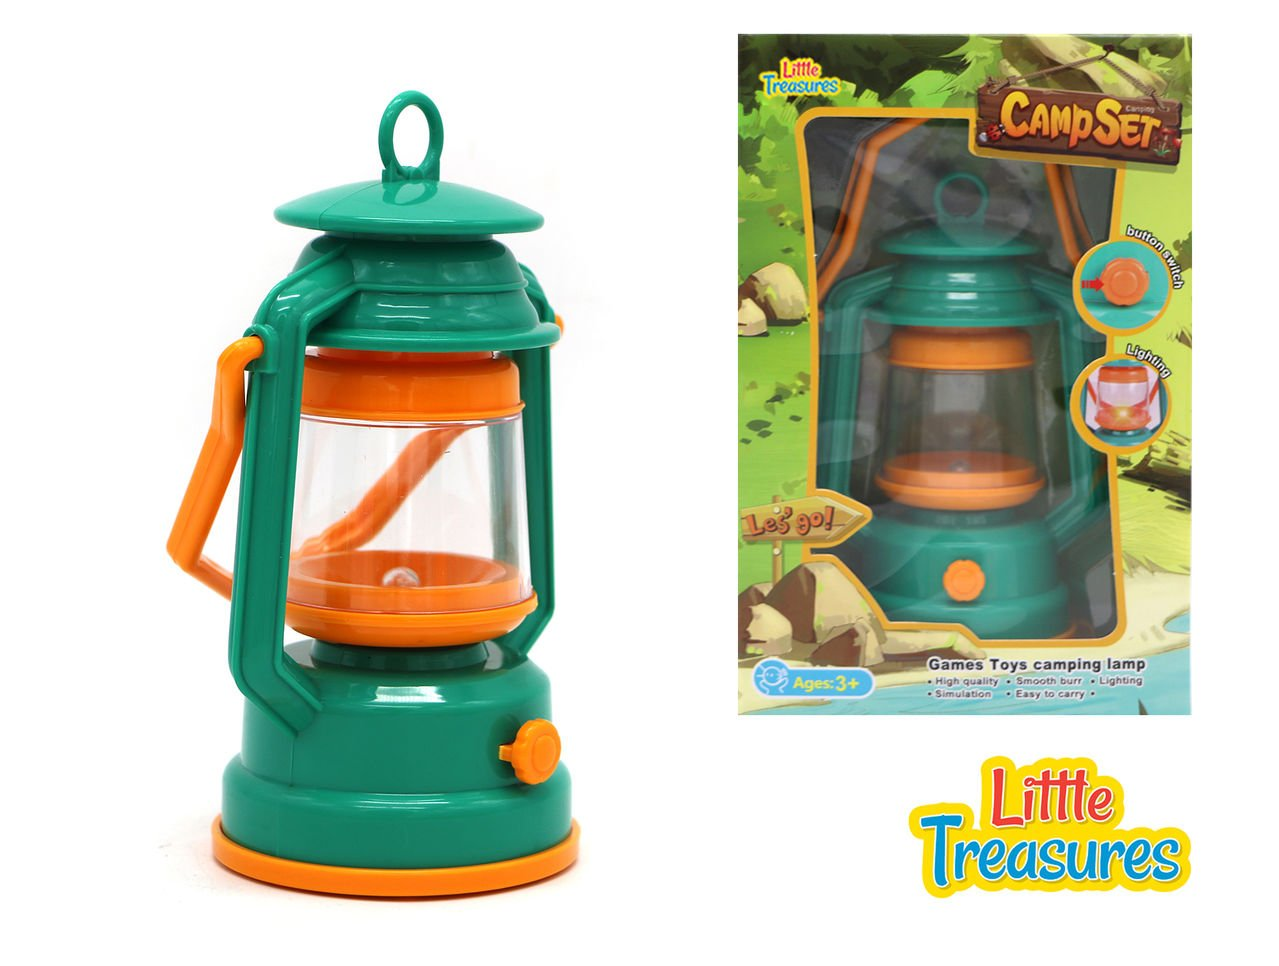 Camping Toy Lantern Camp Set pretend play with Button Switch on Light from Little Treasures